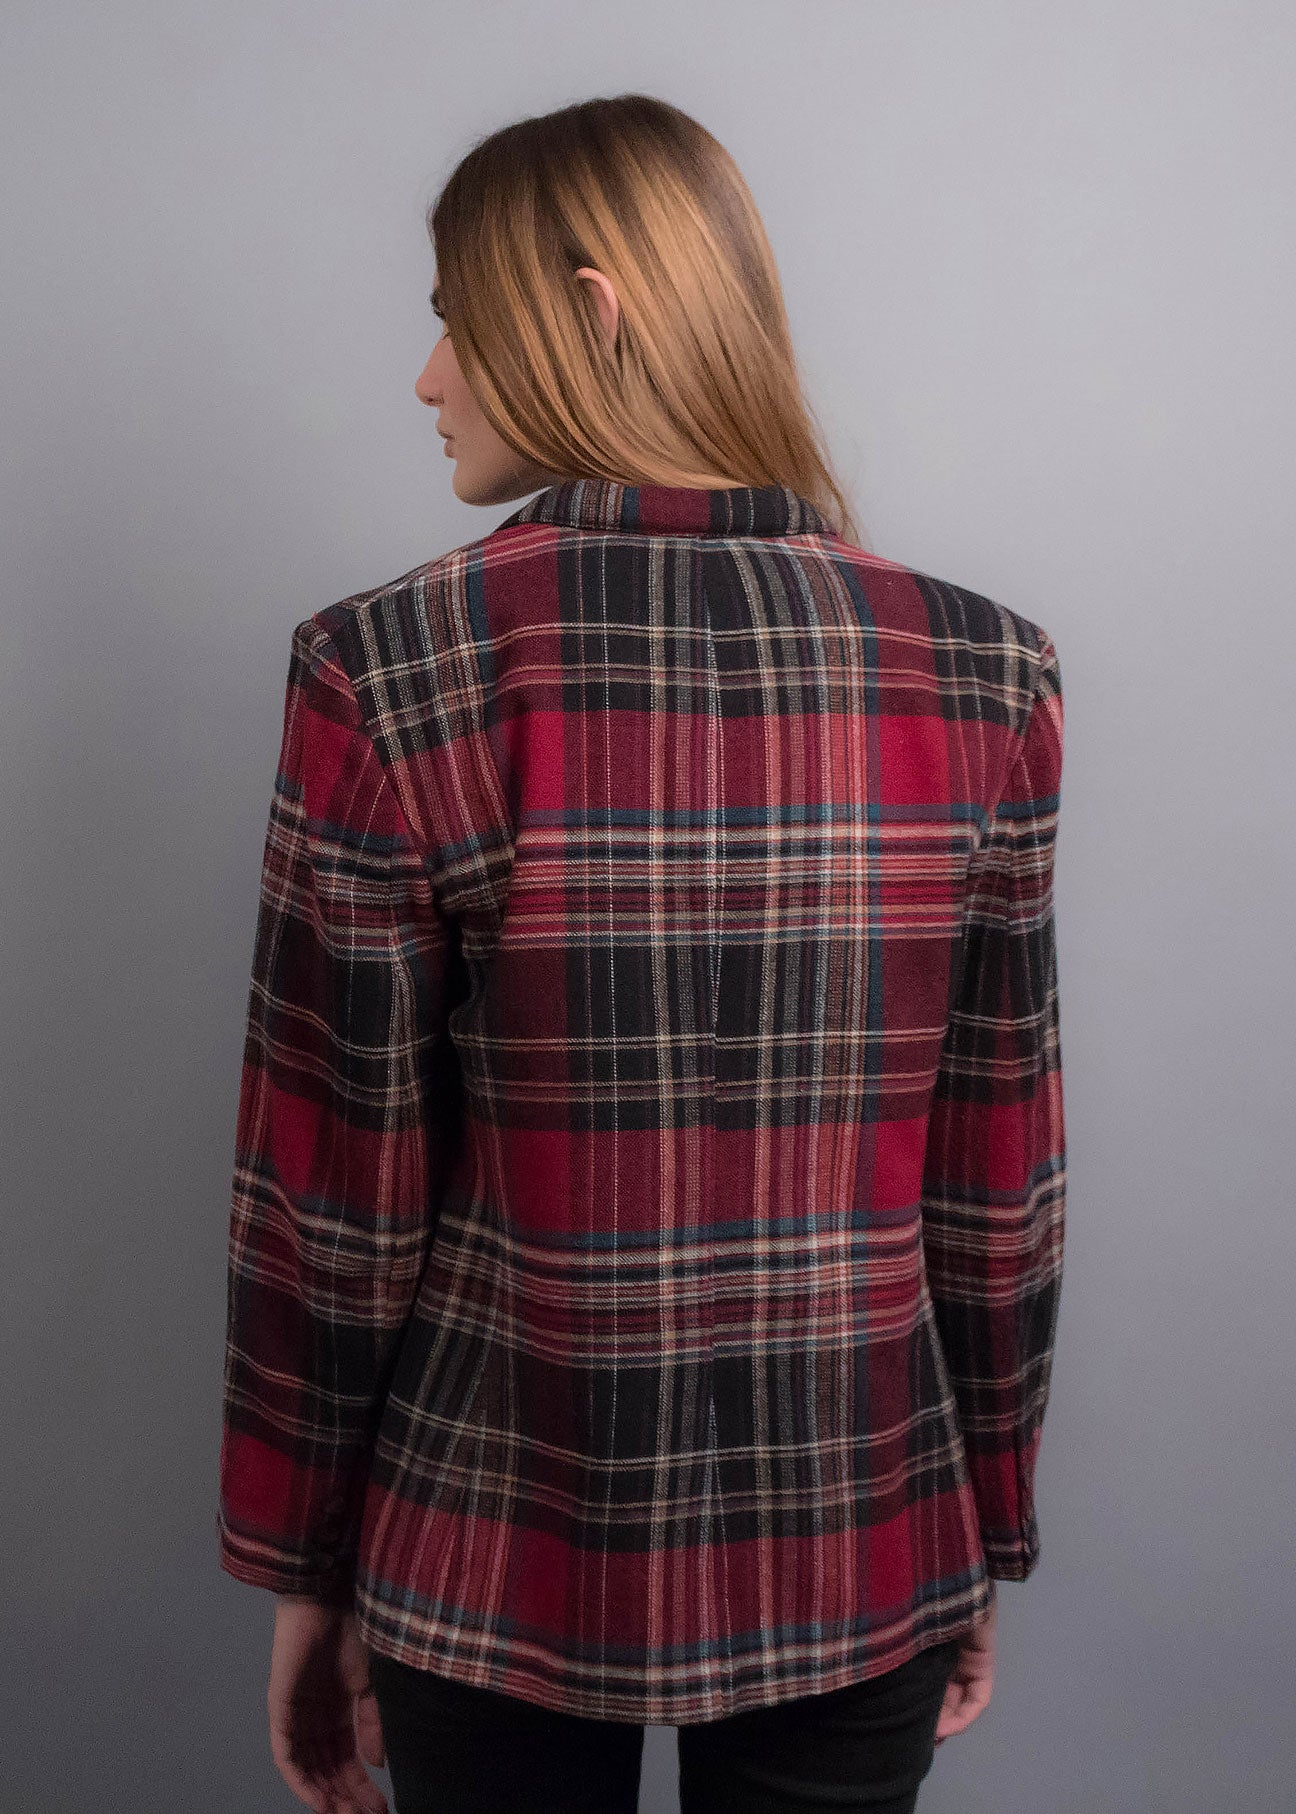 70s Plaid Blazer